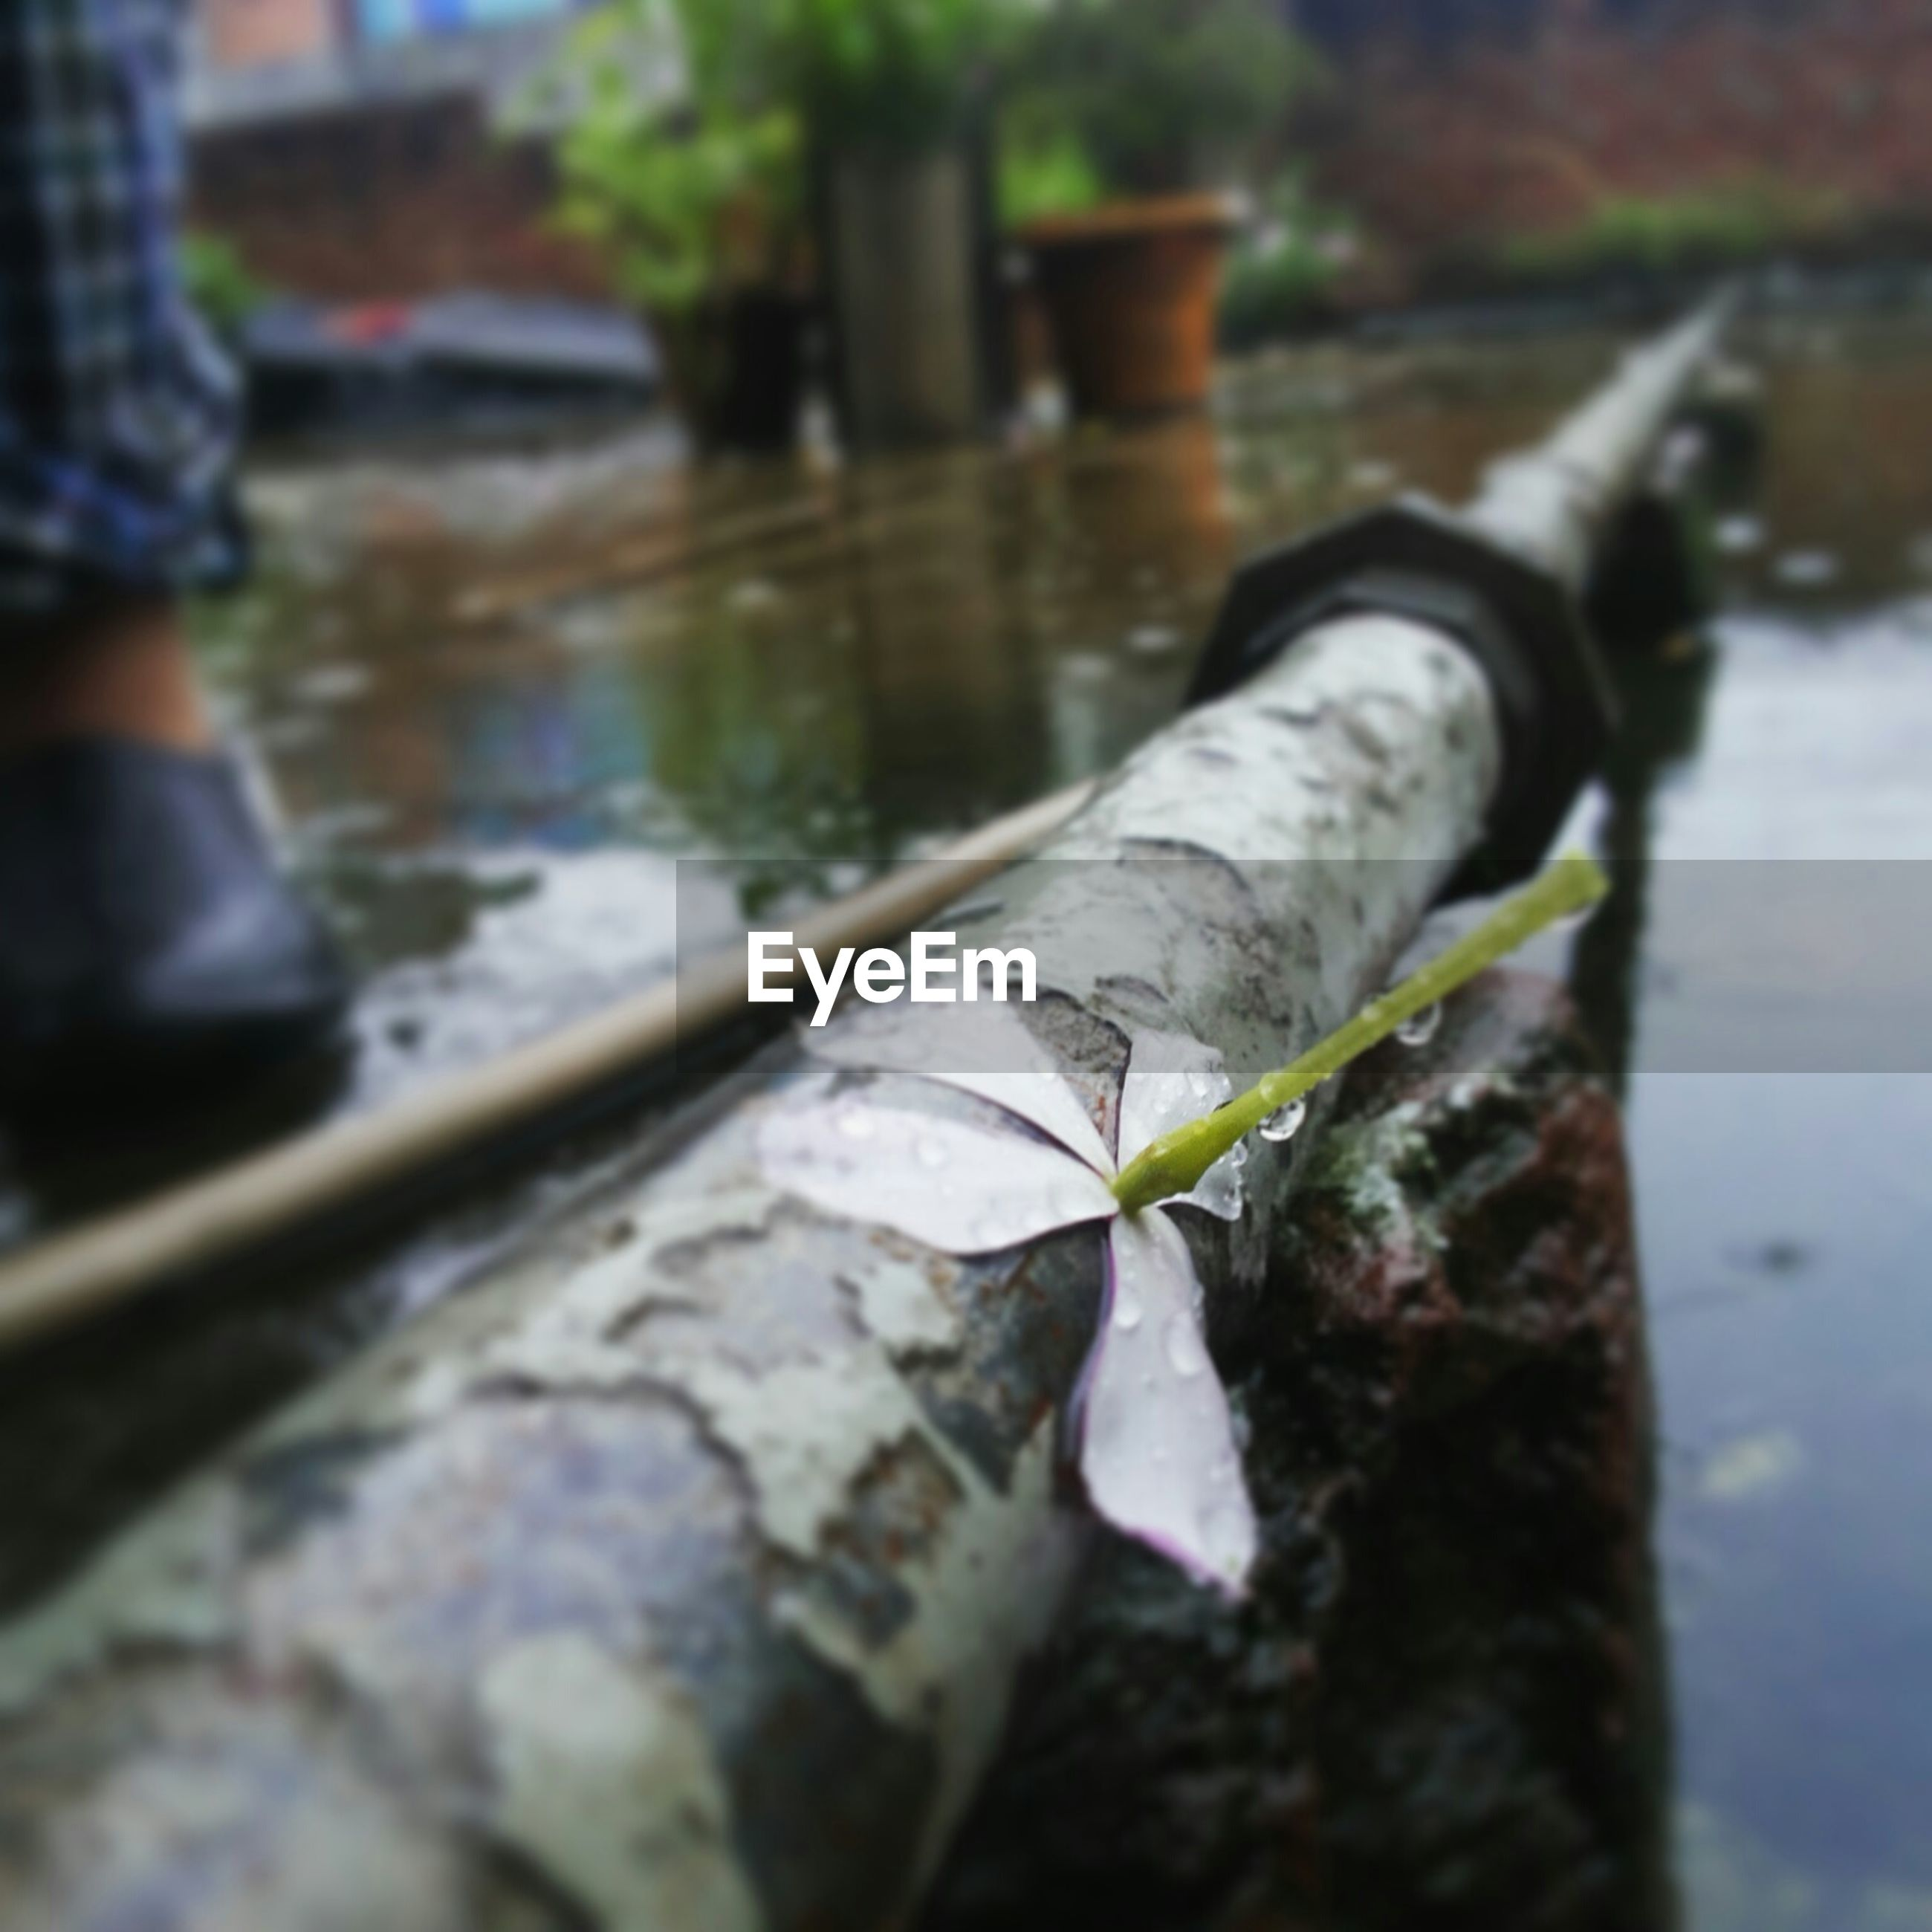 water, focus on foreground, reflection, selective focus, close-up, river, lake, day, outdoors, nature, part of, low section, shoe, wood - material, pond, leaf, men